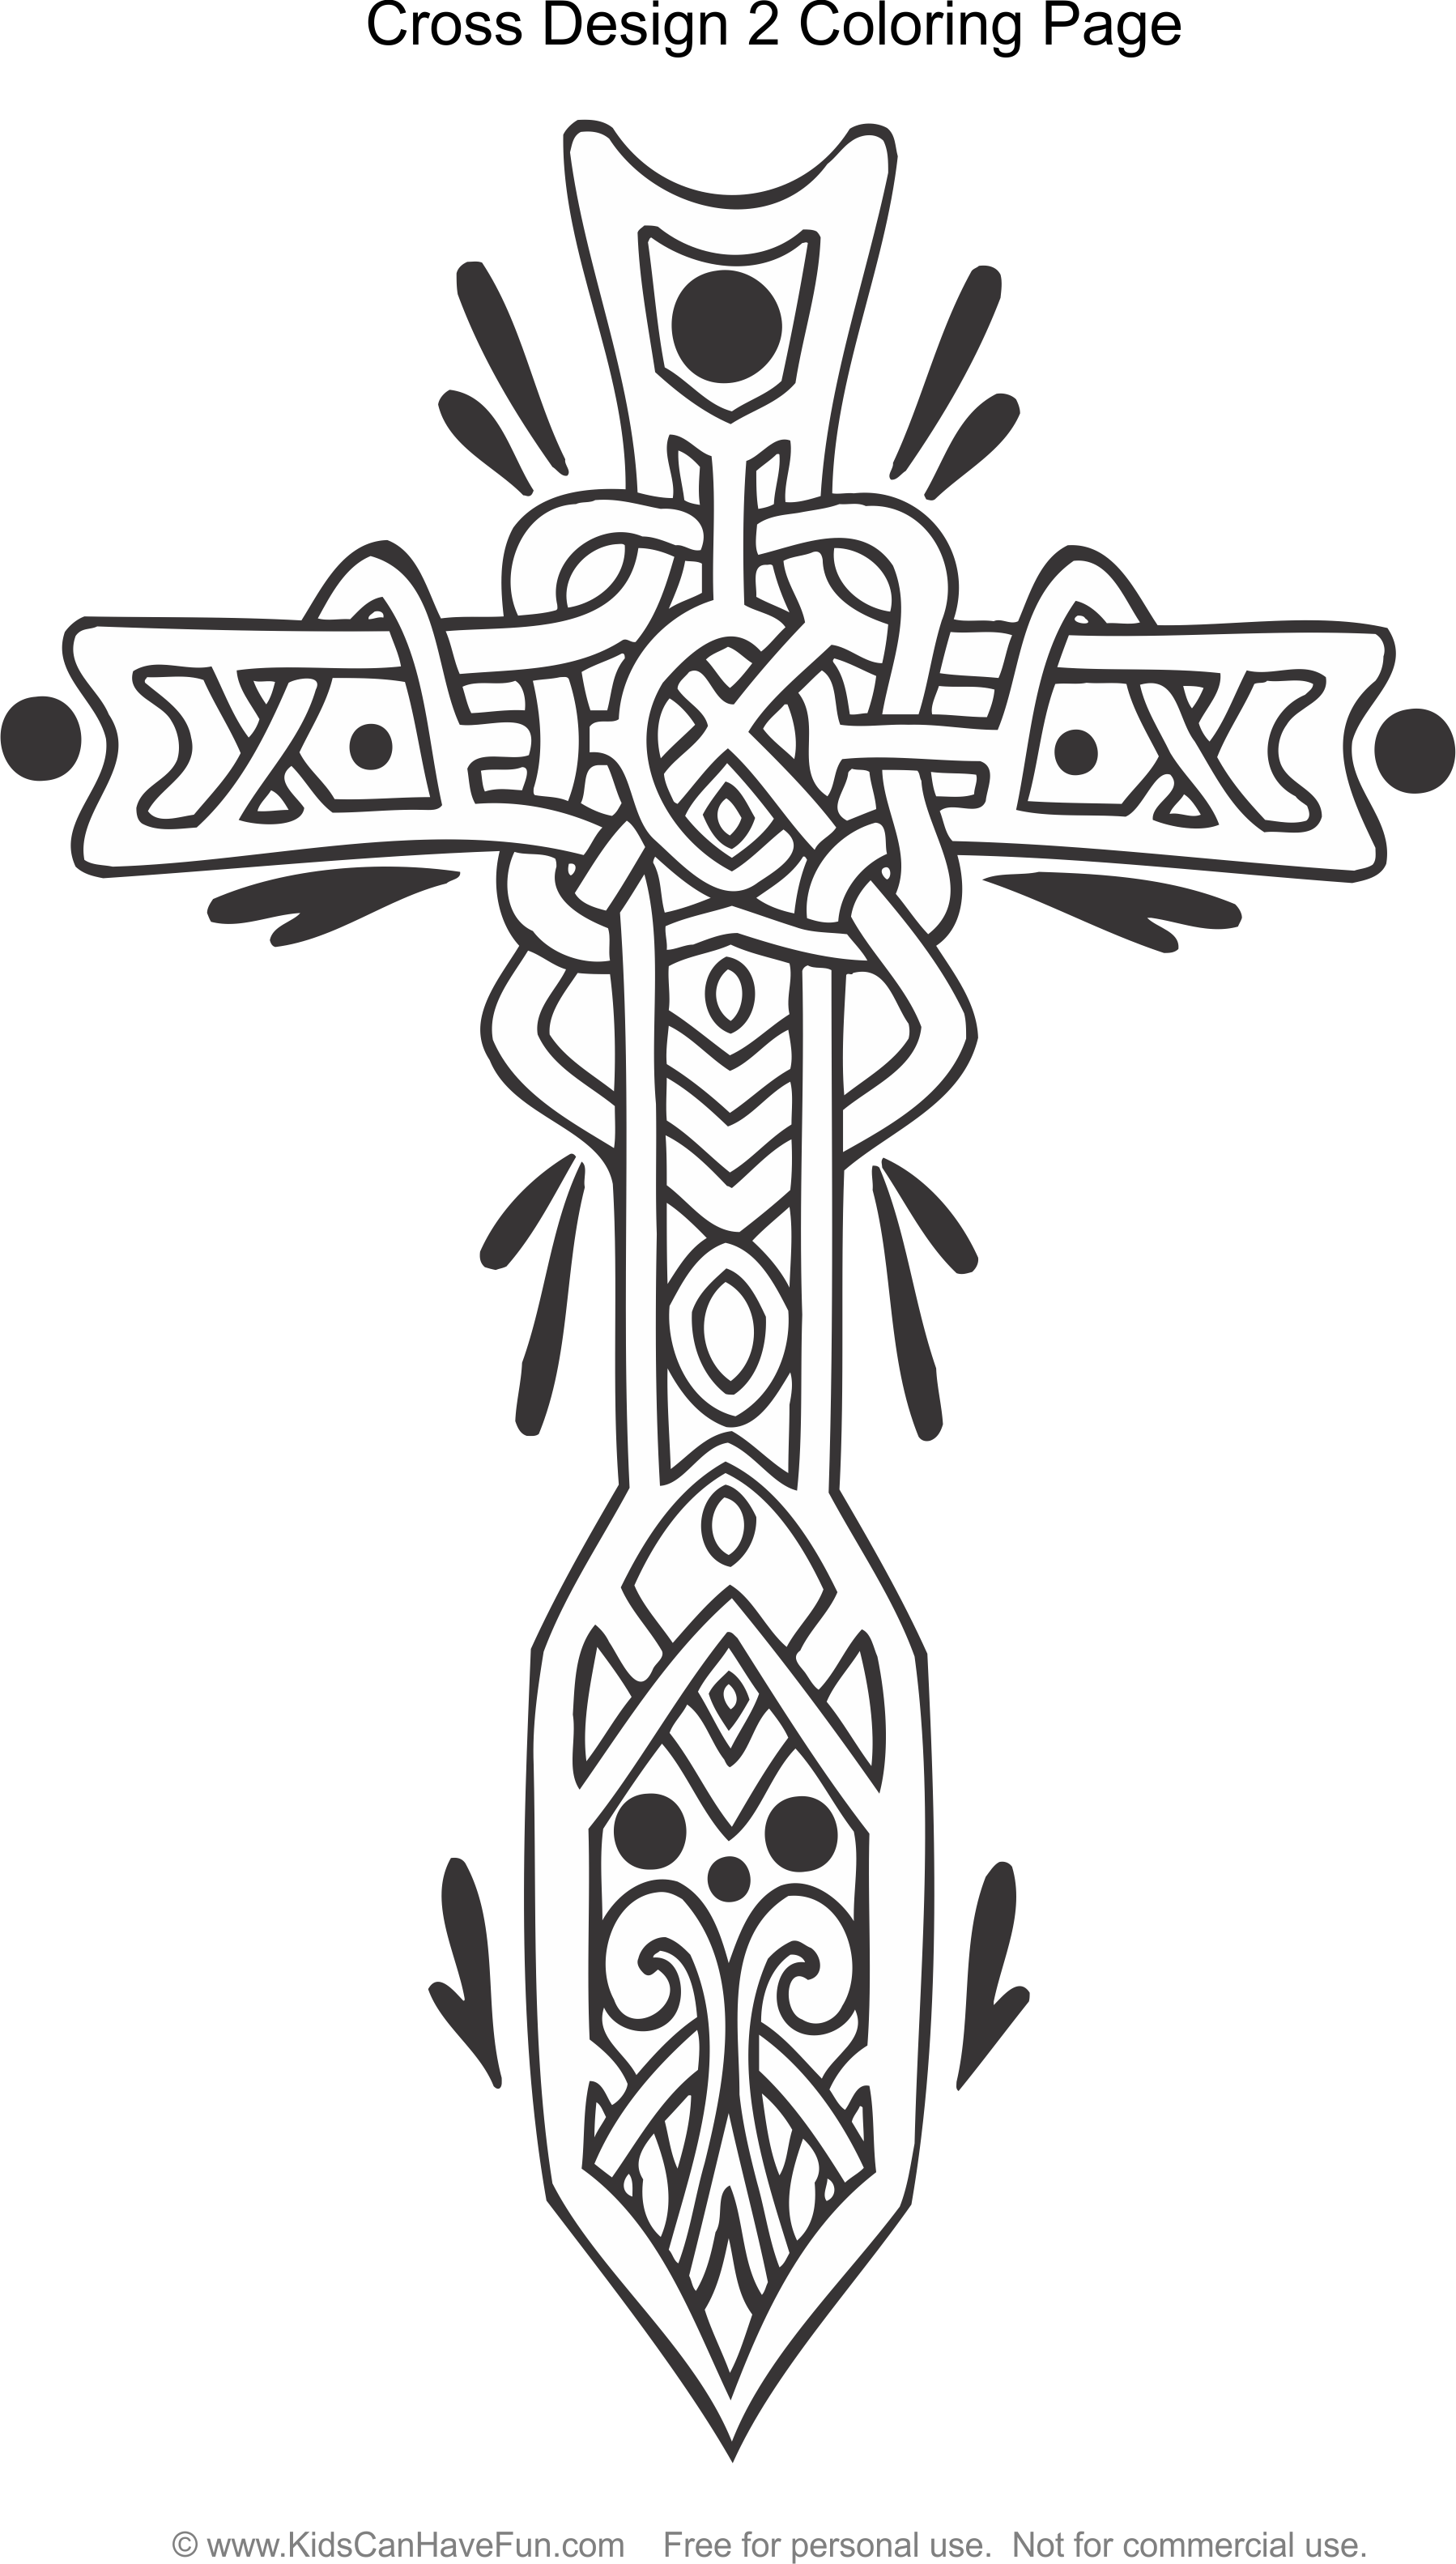 1798x3166 Celtic Cross Design 2 Coloring Page